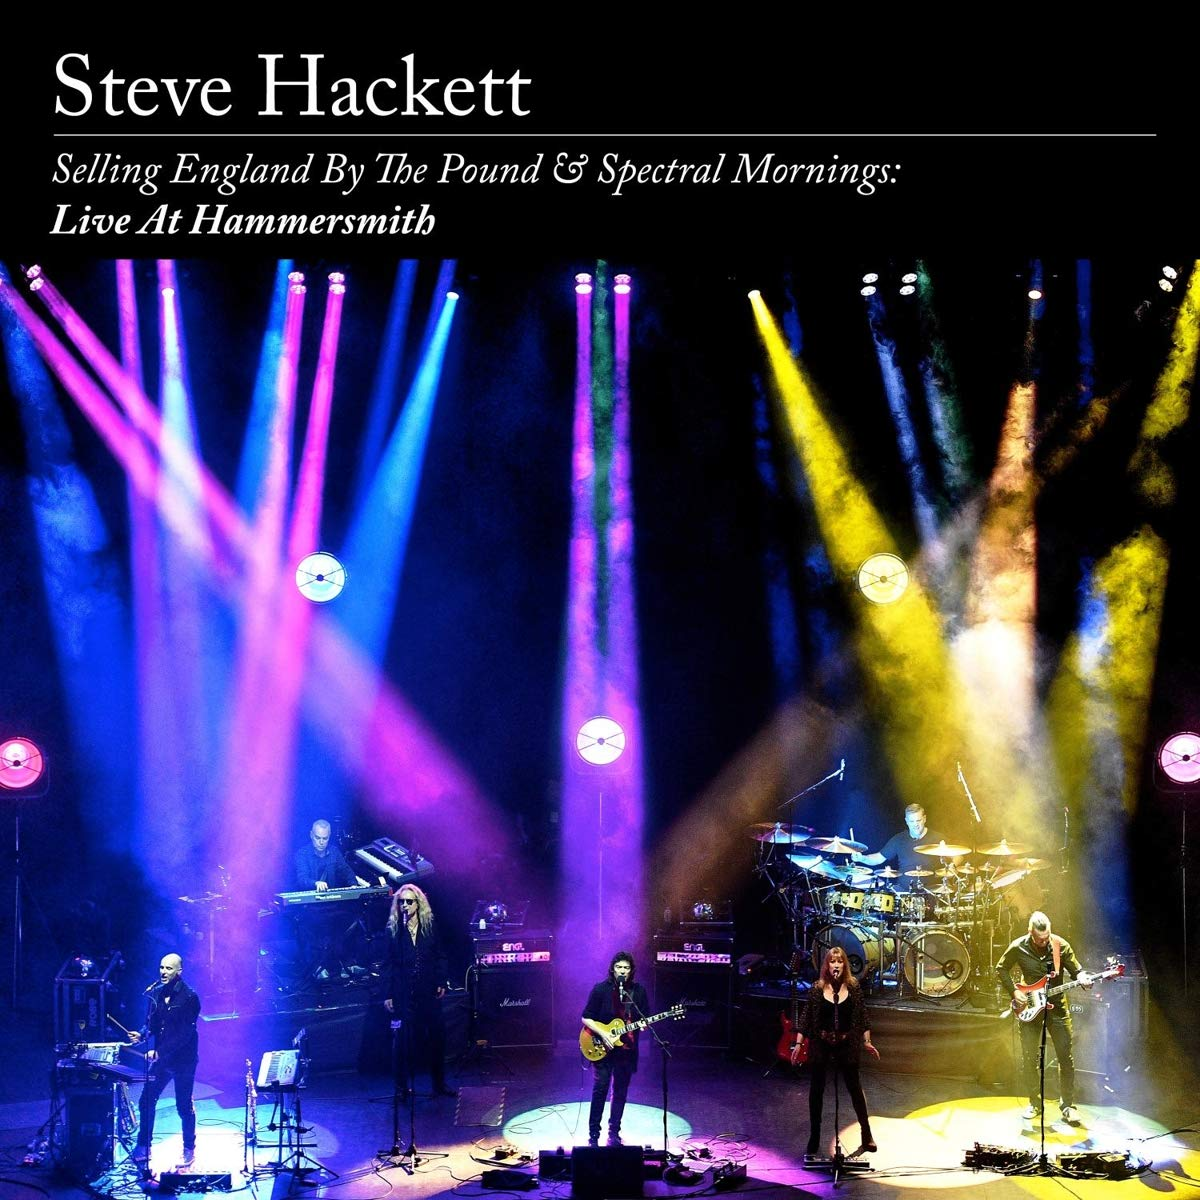 Steve Hackett >Selling England By The Pound & Spectral Mornings: Live At Hammersmith